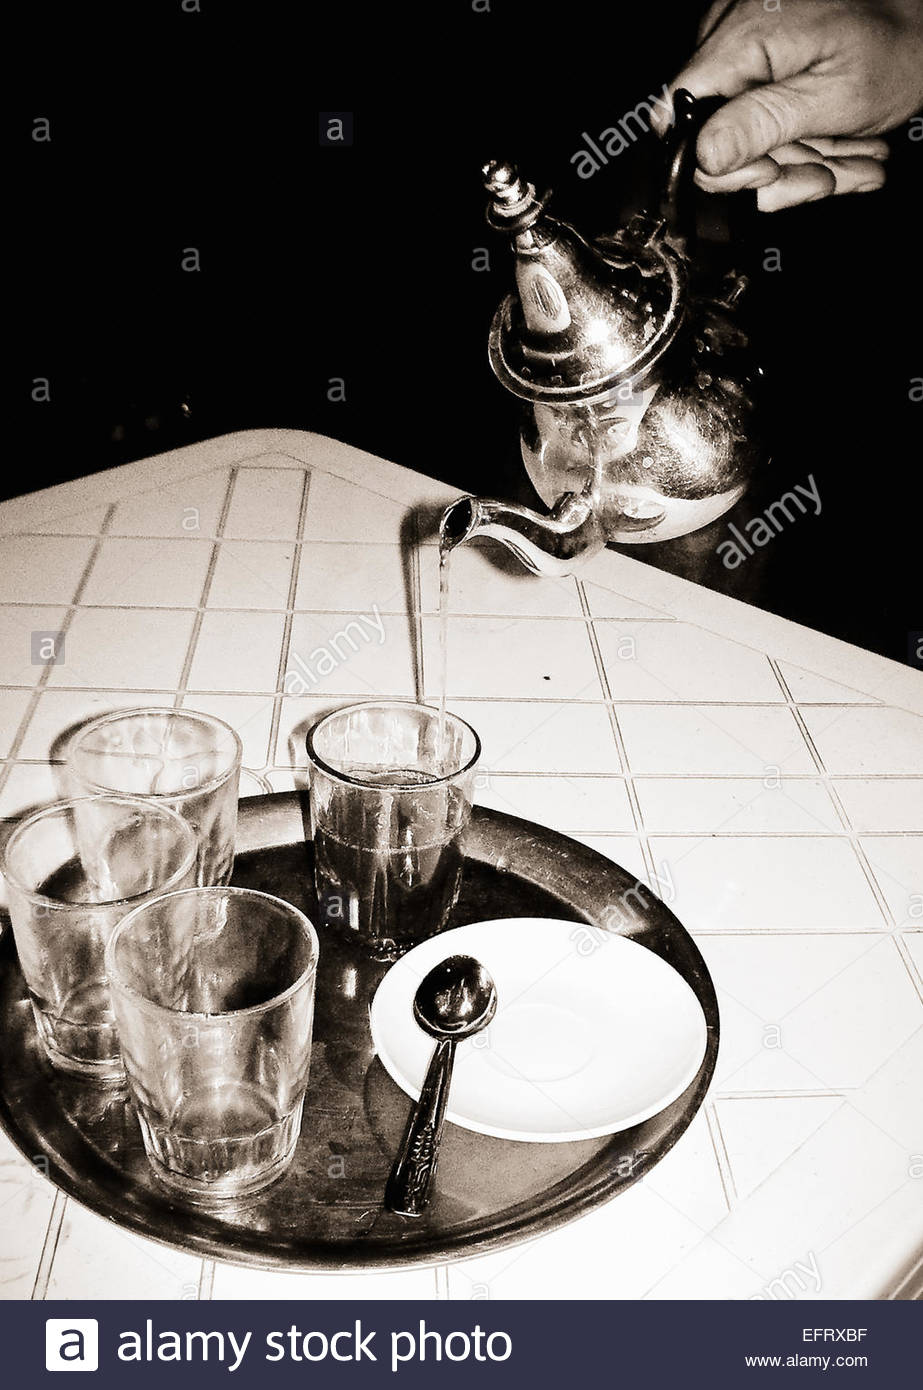 Arabic Mint Tea Poured From Silver Teapot Into Glass Restaurant Food And Drink Western Sahara Spanish Sahara Sahara Stock Photo